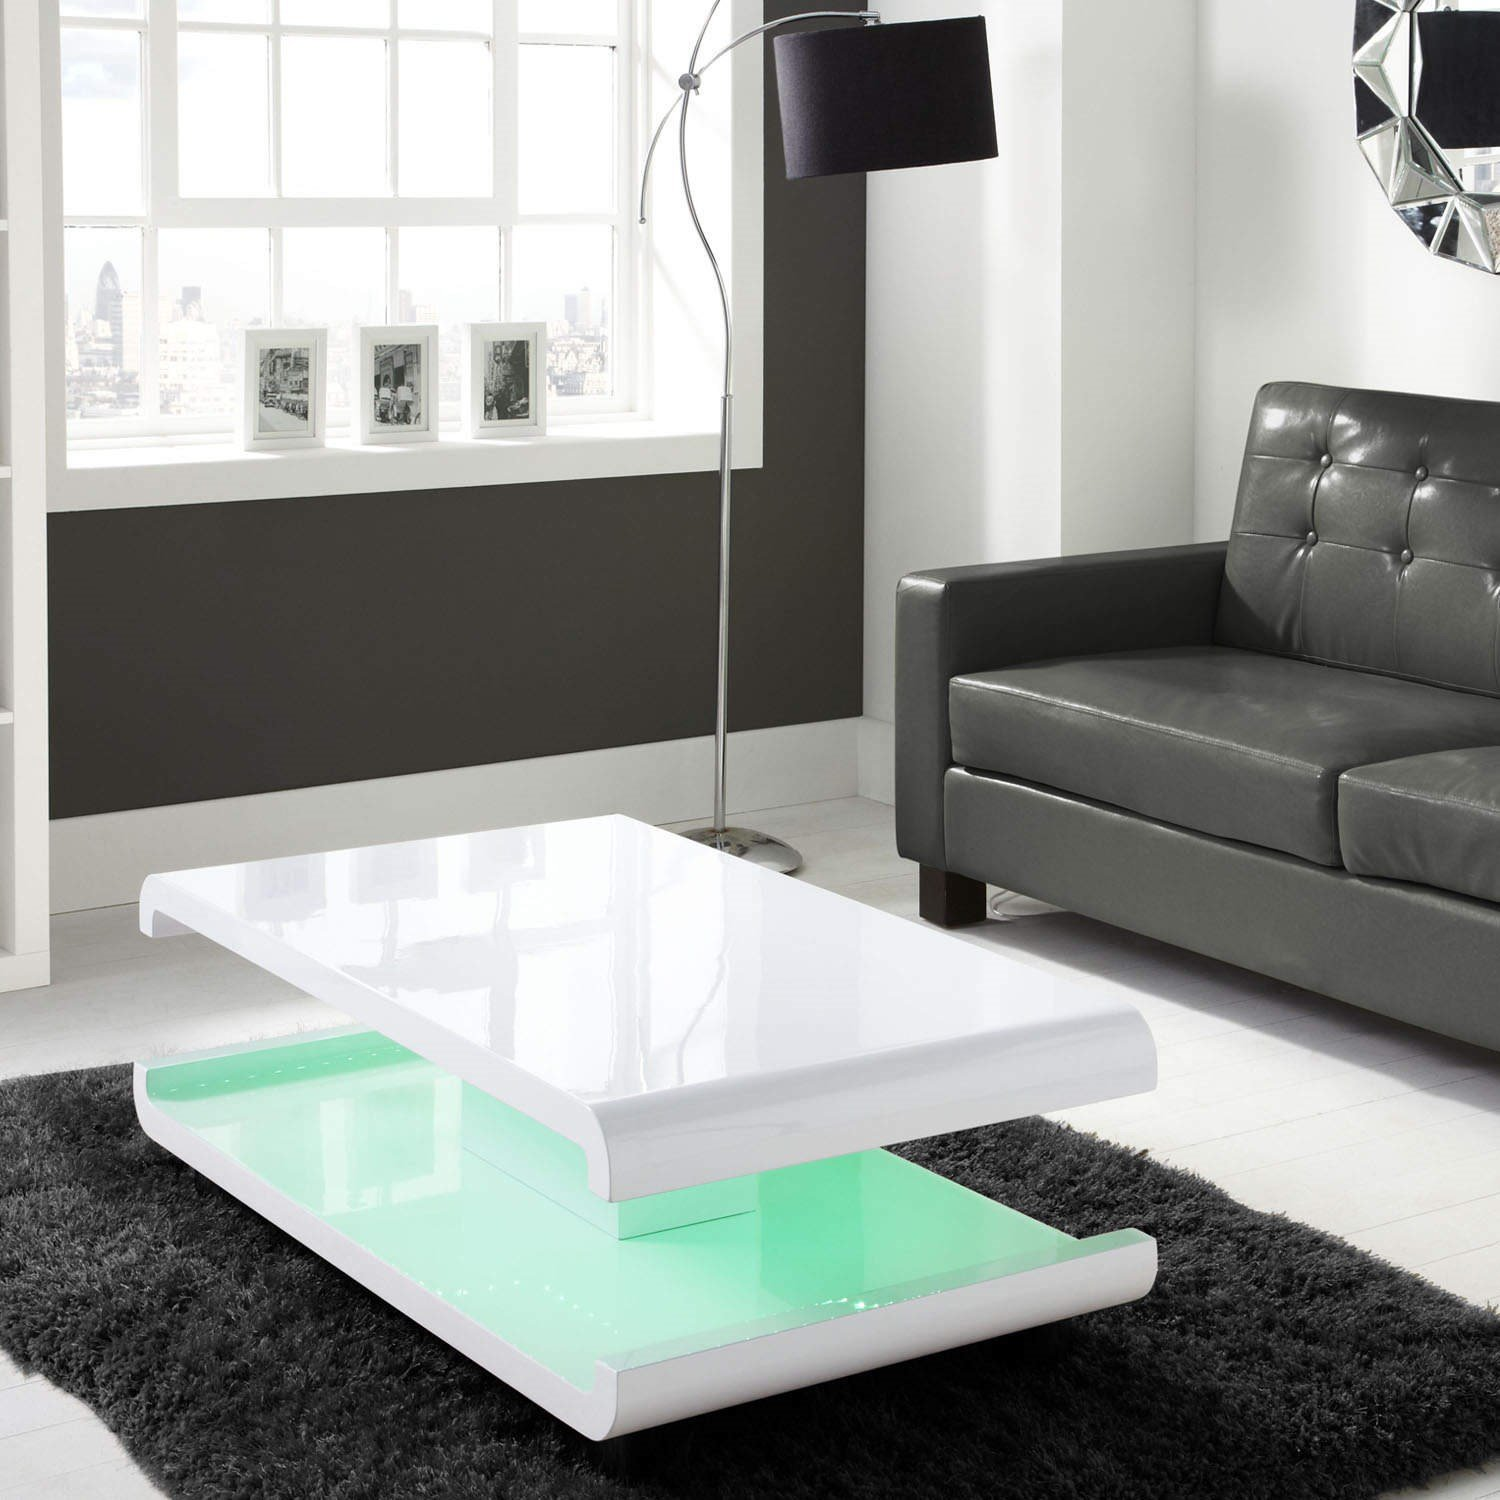 Tiffany white high gloss coffee table with led lighting amazon tiffany white high gloss coffee table with led lighting amazon kitchen home geotapseo Image collections